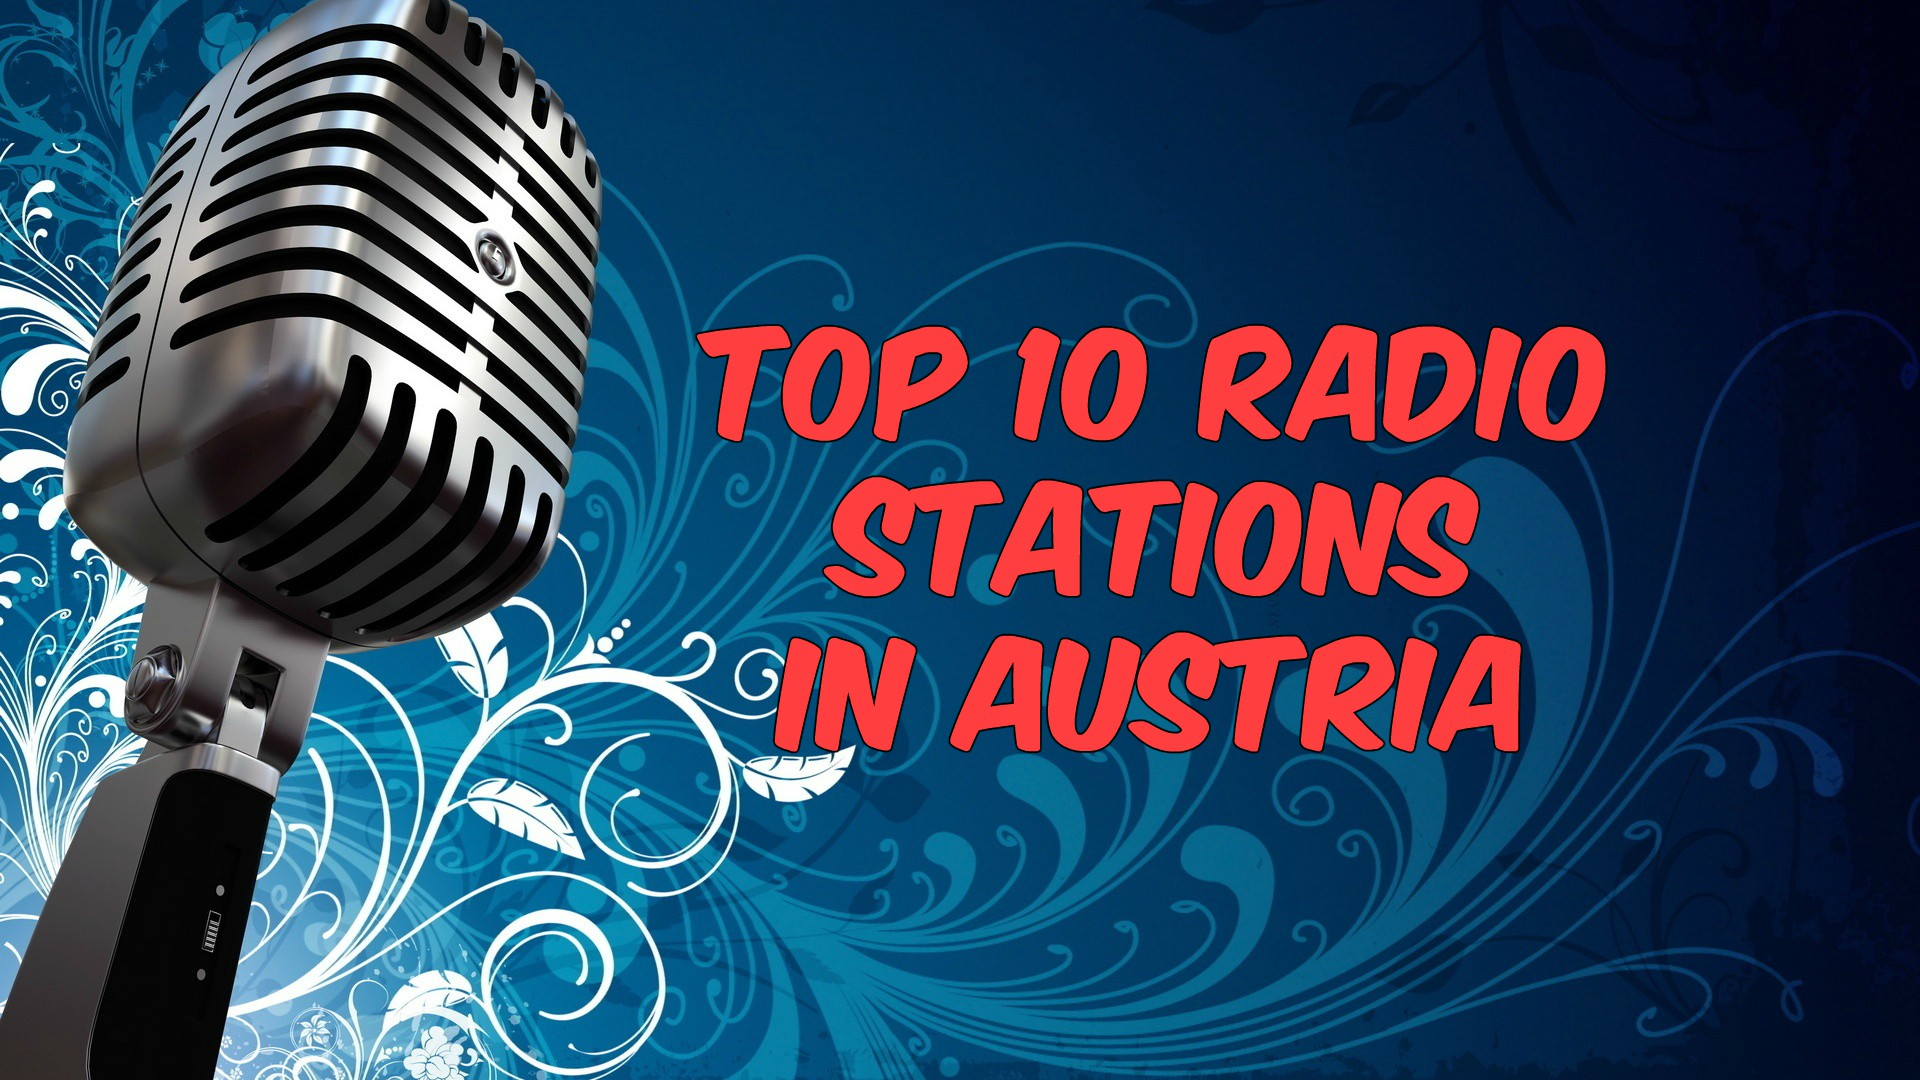 Top10 radio stations in Austria live